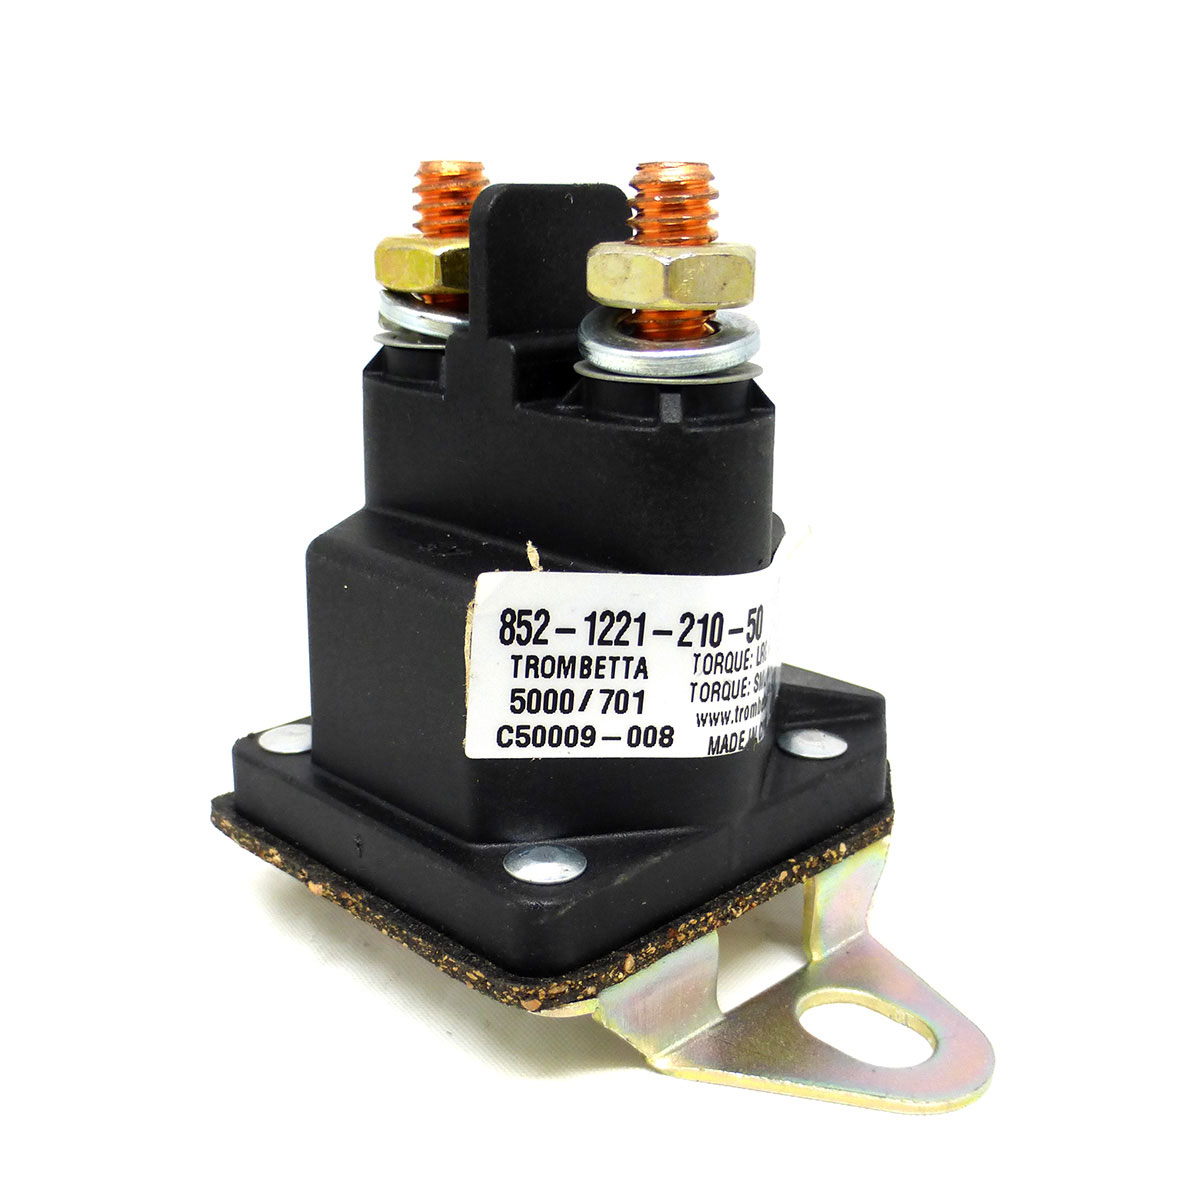 Solenoid for AMF RO 690-900-0012